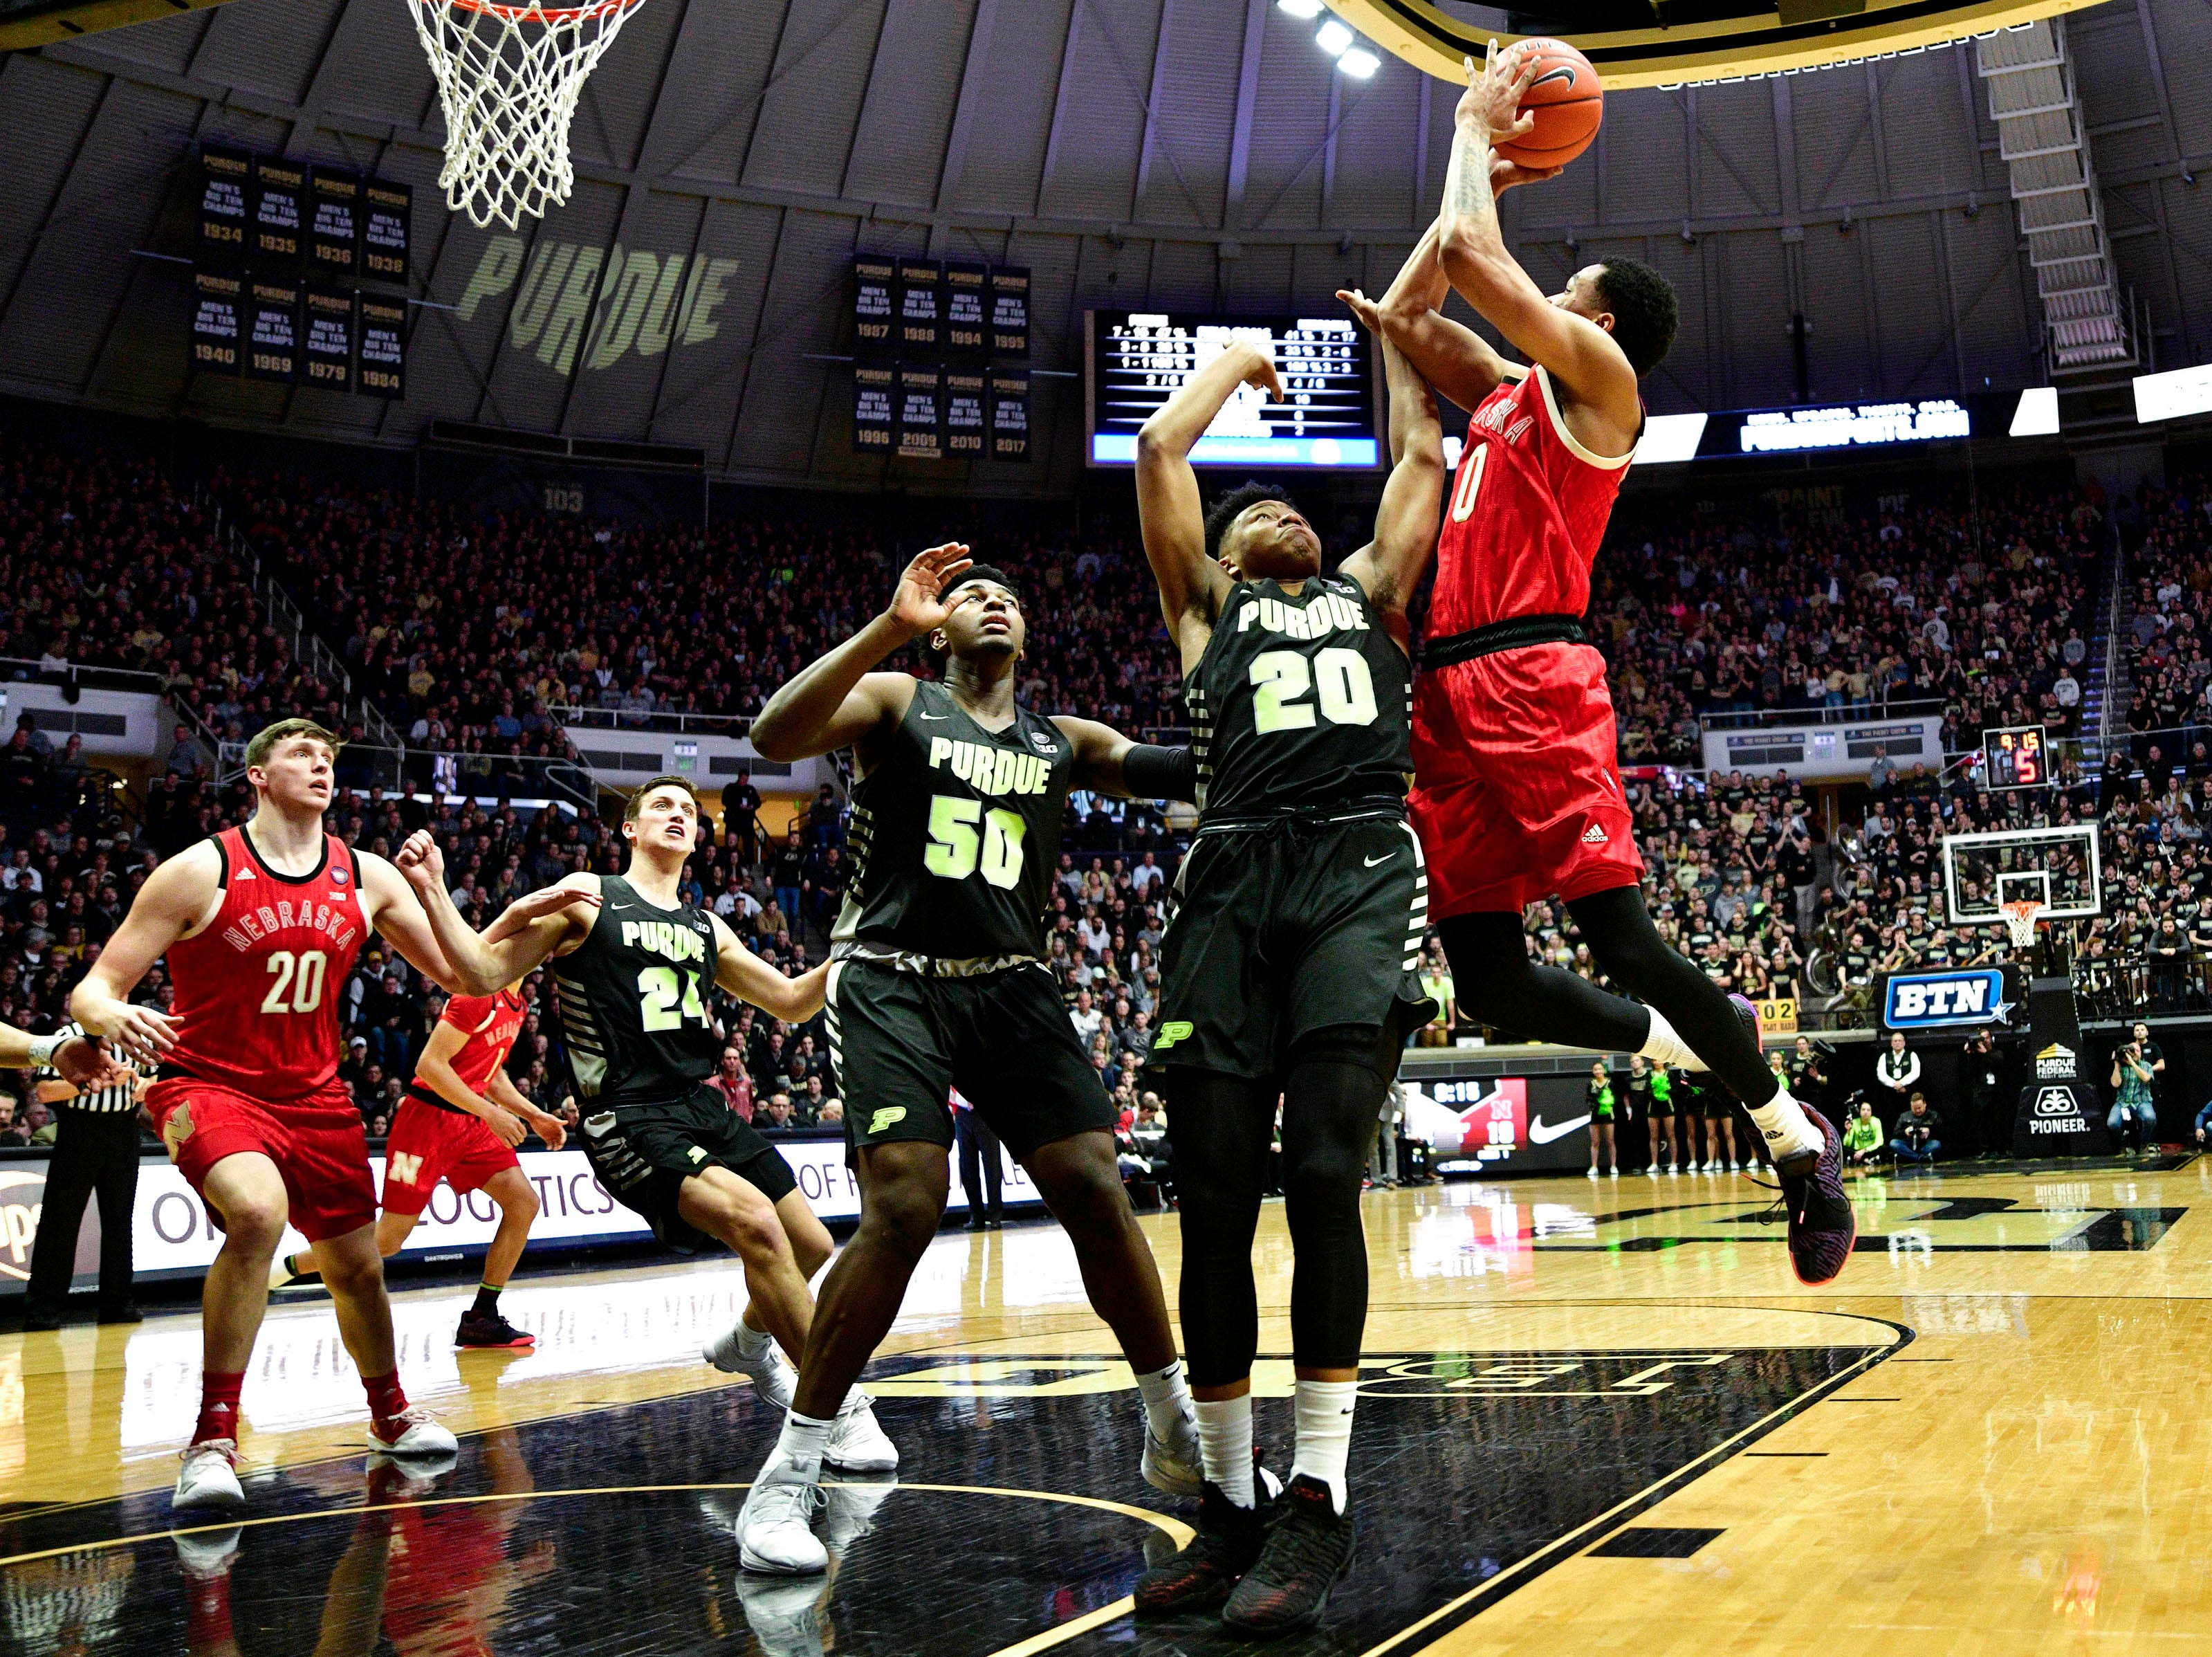 Feb 9, 2019; West Lafayette, IN, USA; Nebraska Cornhuskers guard James Palmer Jr. (0) attempts a shot over Purdue Boilermakers guard Nojel Eastern (20) and Purdue Boilermakers forward Trevion Williams (50) during the first half of the game at Mackey Arena. Mandatory Credit: Marc Lebryk-USA TODAY Sports